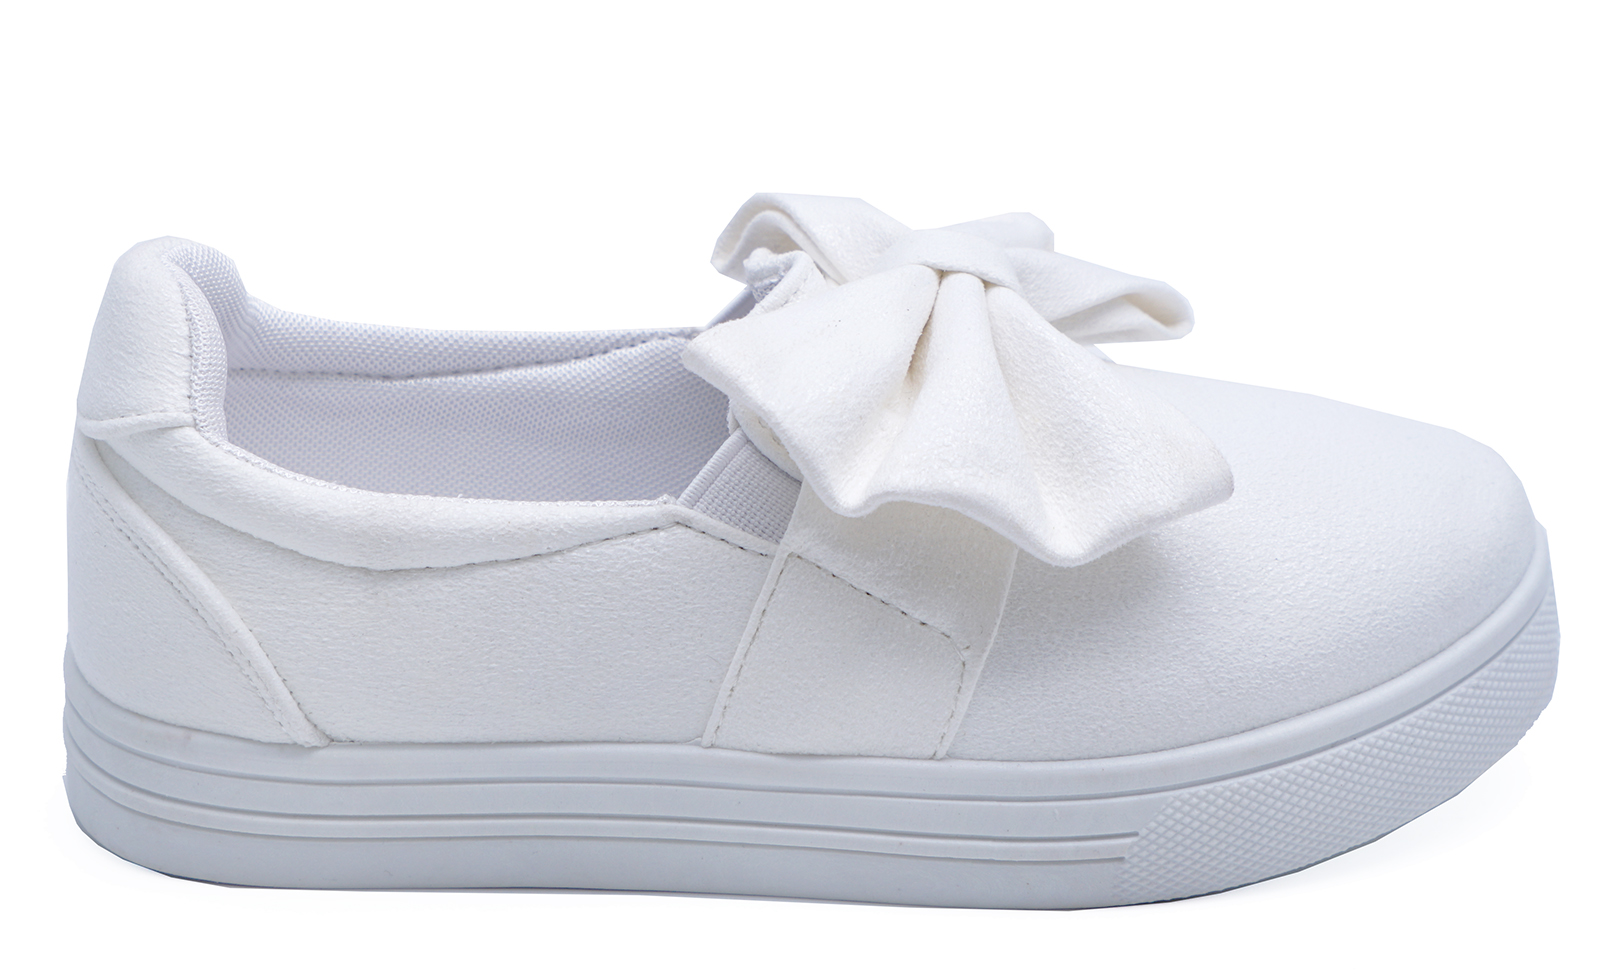 96fac4c5f20 Sentinel CHILDRENS KIDS GIRLS SLIP-ON FLAT CASUAL SHOES WHITE TRAINERS  DANCE PUMPS UK 8-